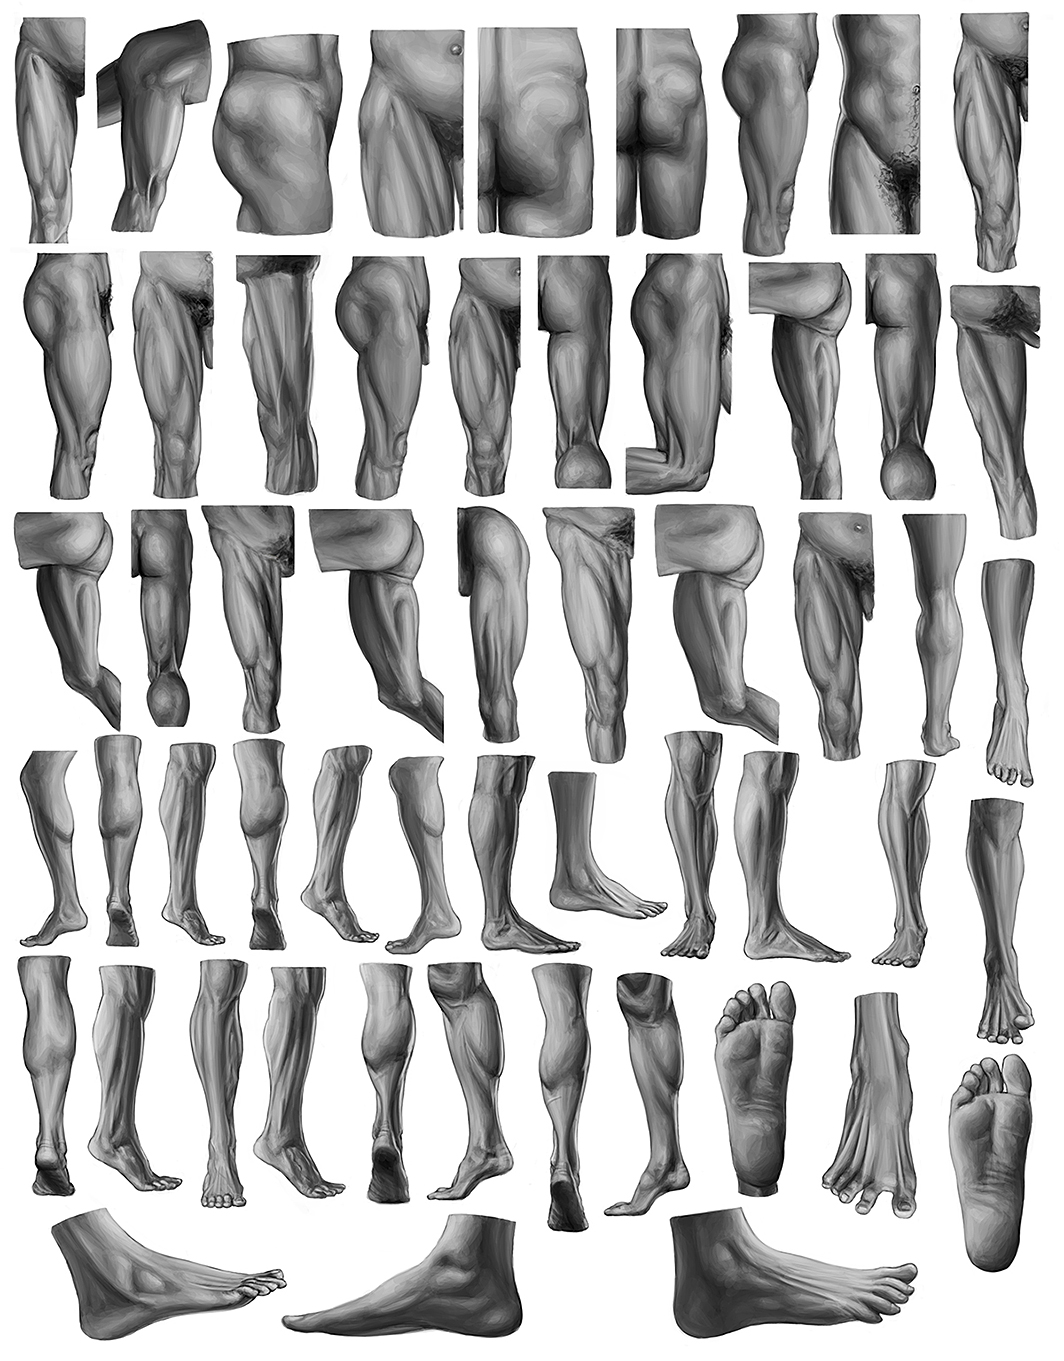 Studies of Lower Body from Eliot Goldfinger's Human Anatomy for Artists